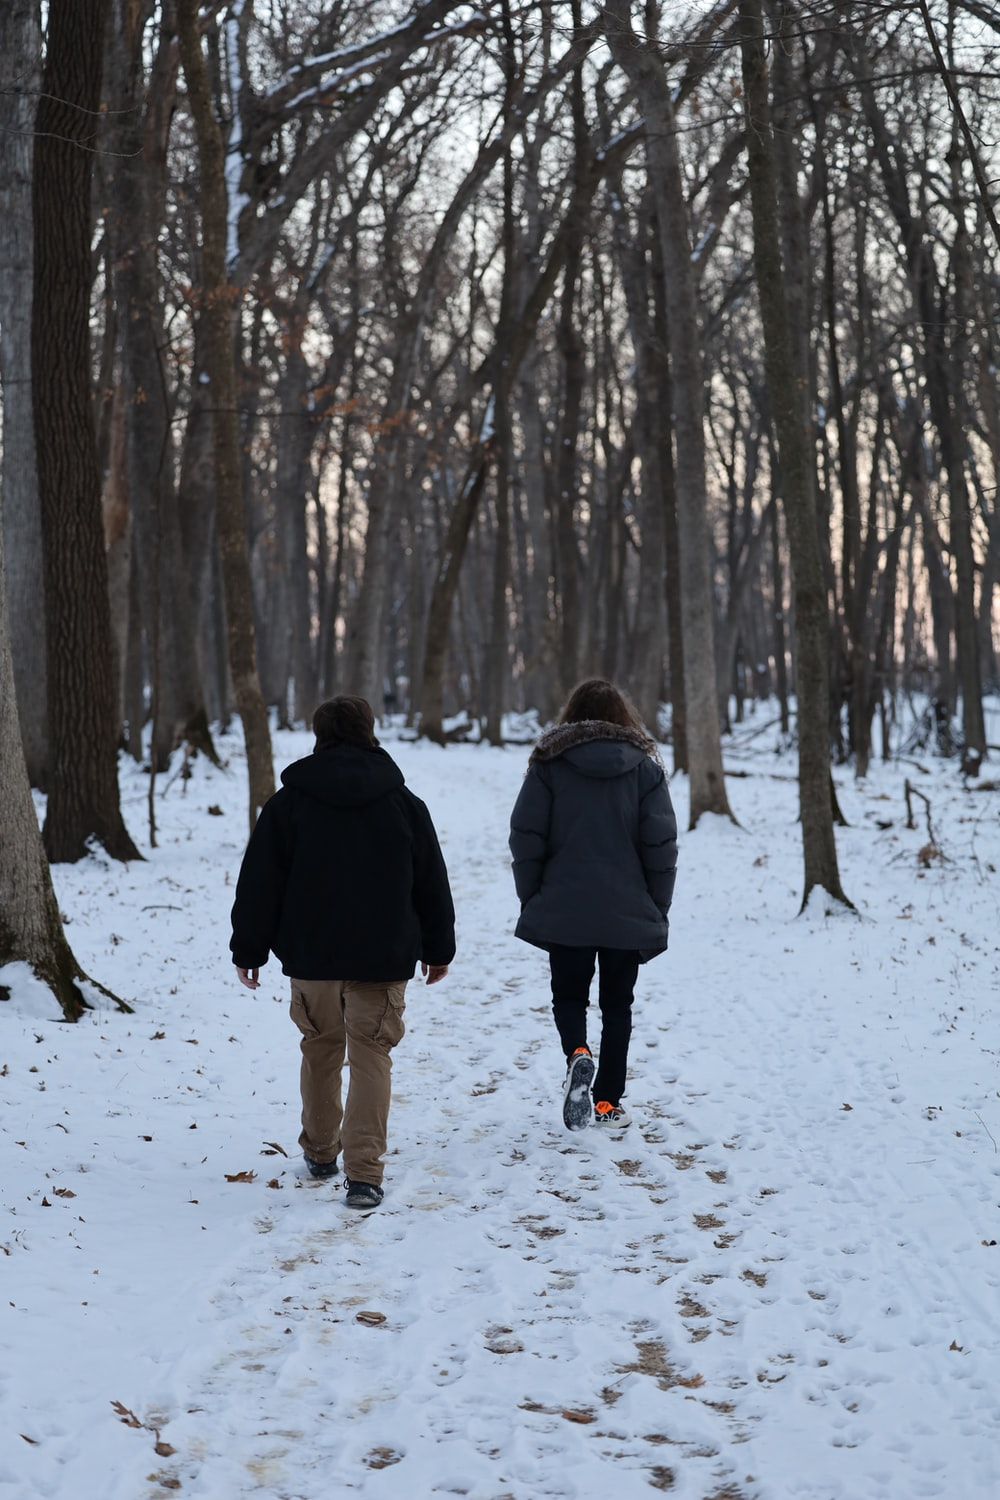 man and woman walking on snow covered ground during daytime